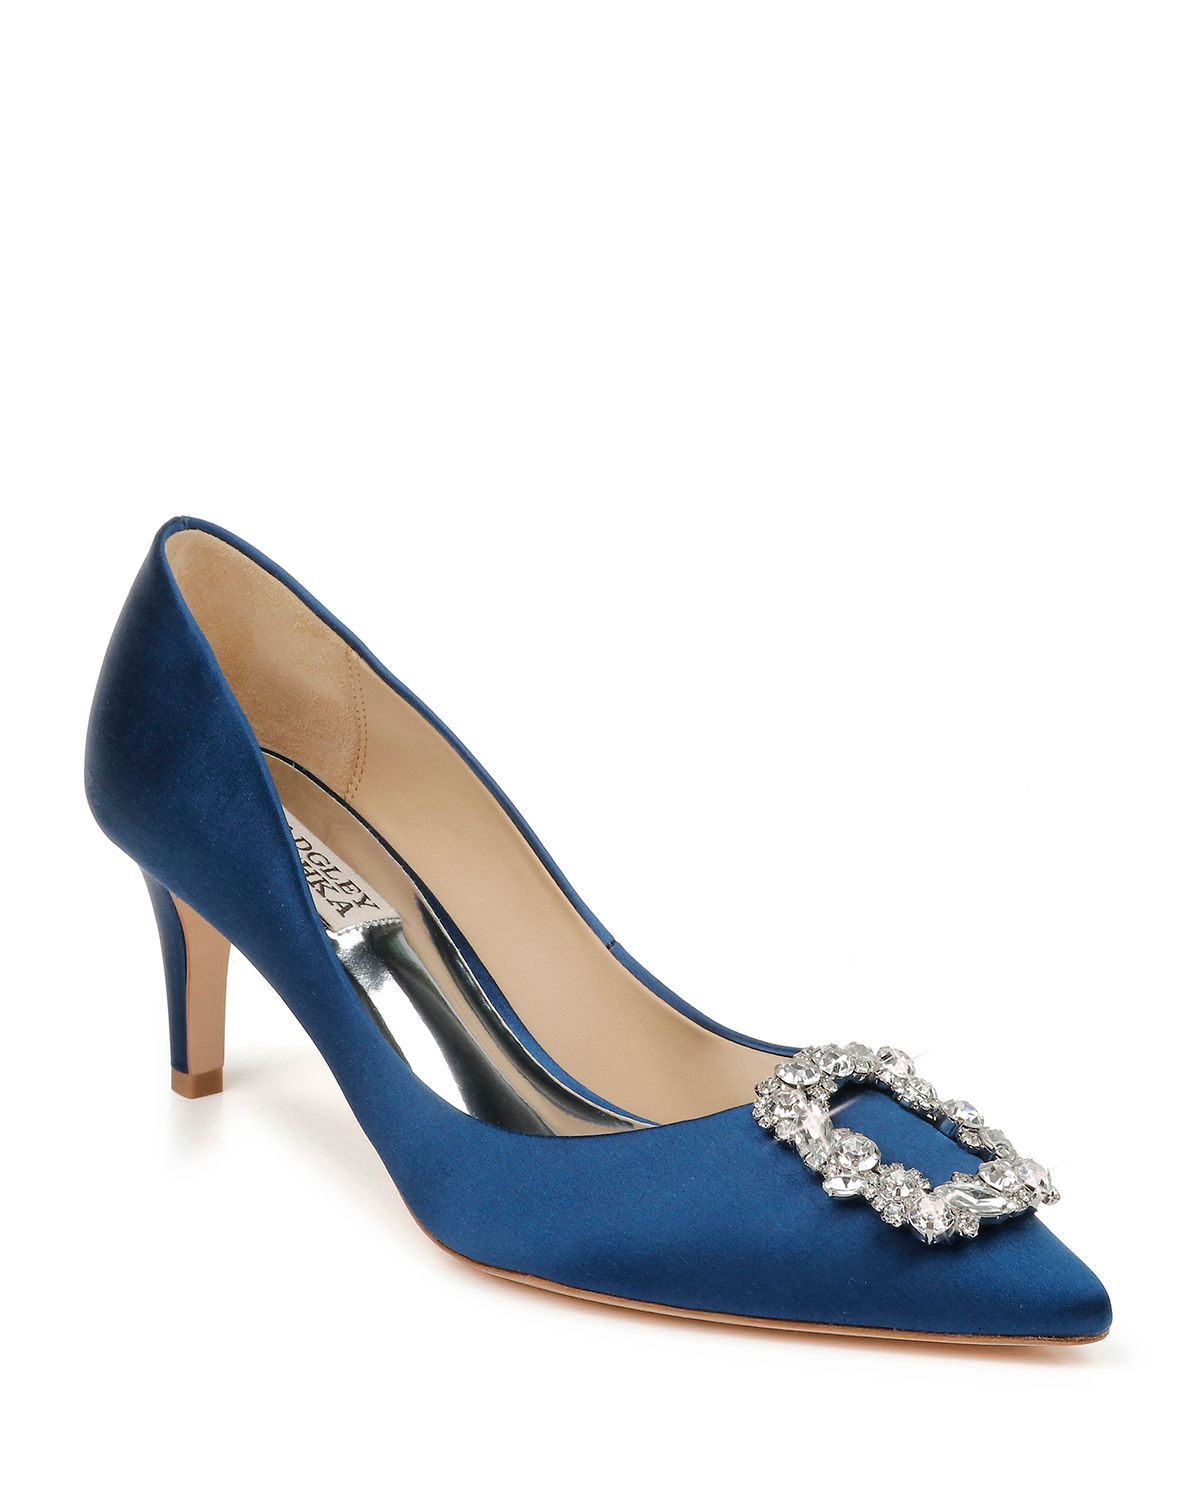 Badgley Mischka Pumps CARRIE CRYSTAL PILGRIM SATIN PUMPS